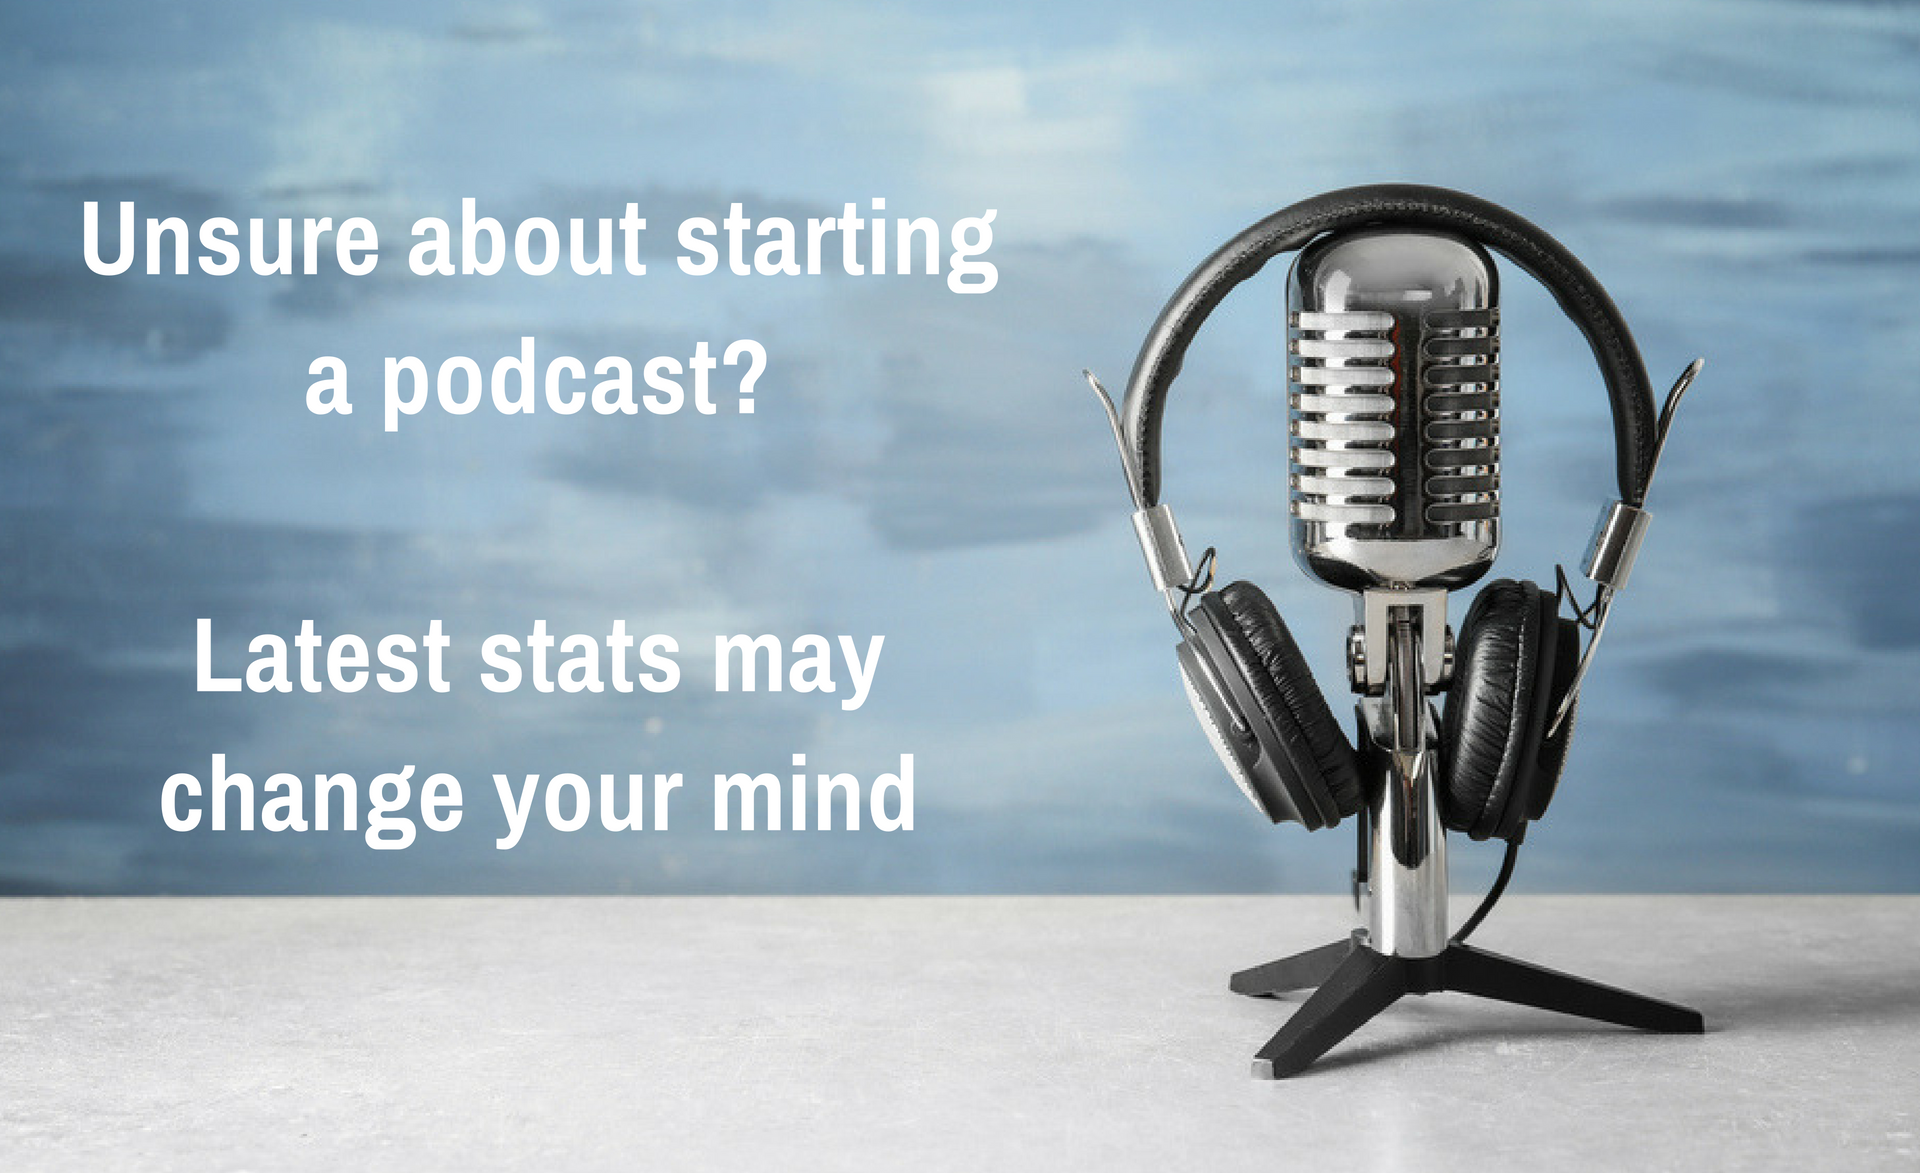 Unsure about starting a podcast? Latest stats may change your mind